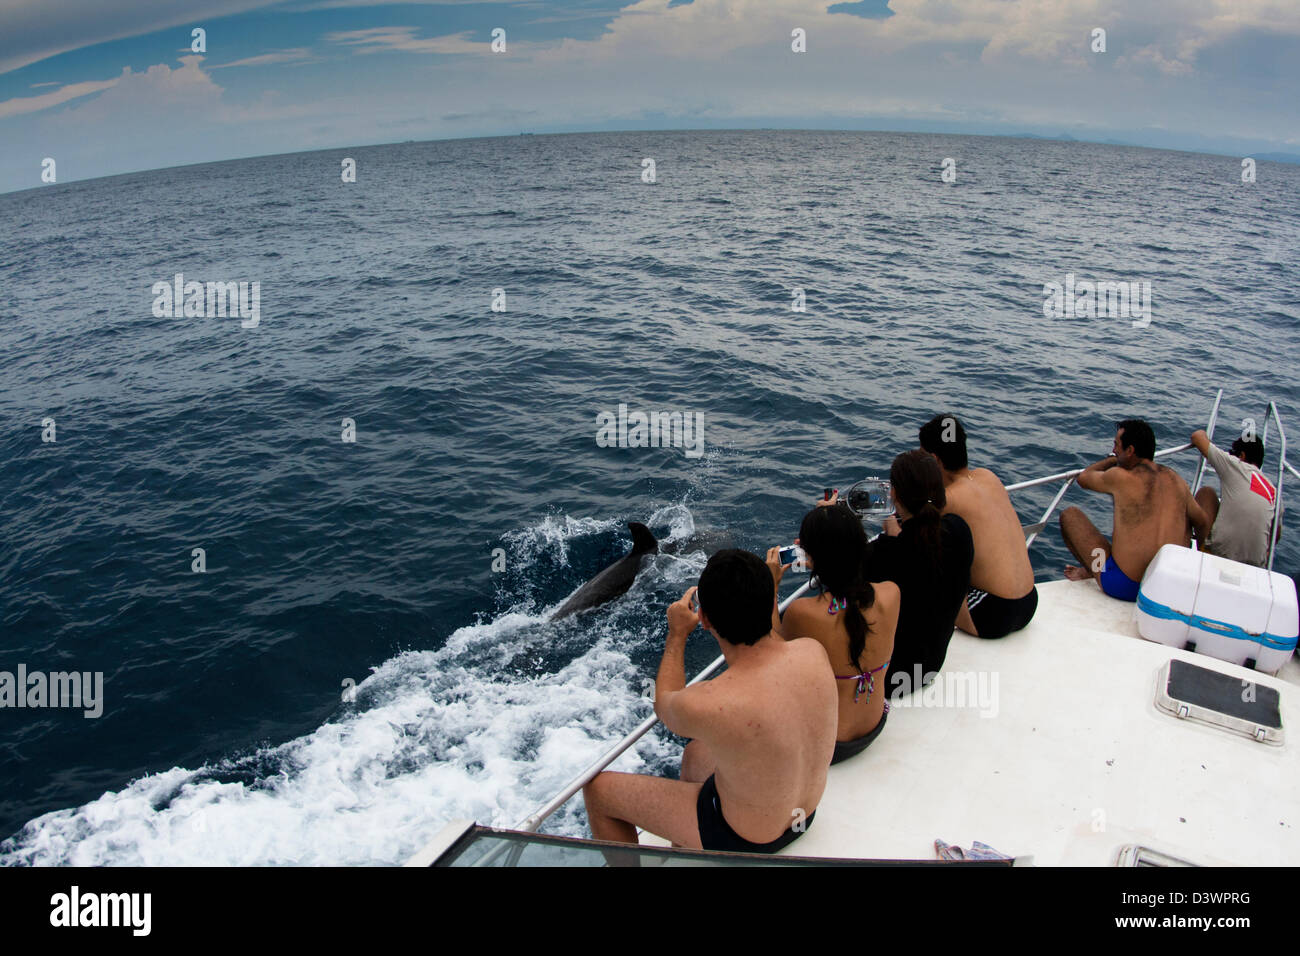 tourists looking at dolphins free on the sea.  Laje de Santos, Sao Paulo, Brazil - Stock Image